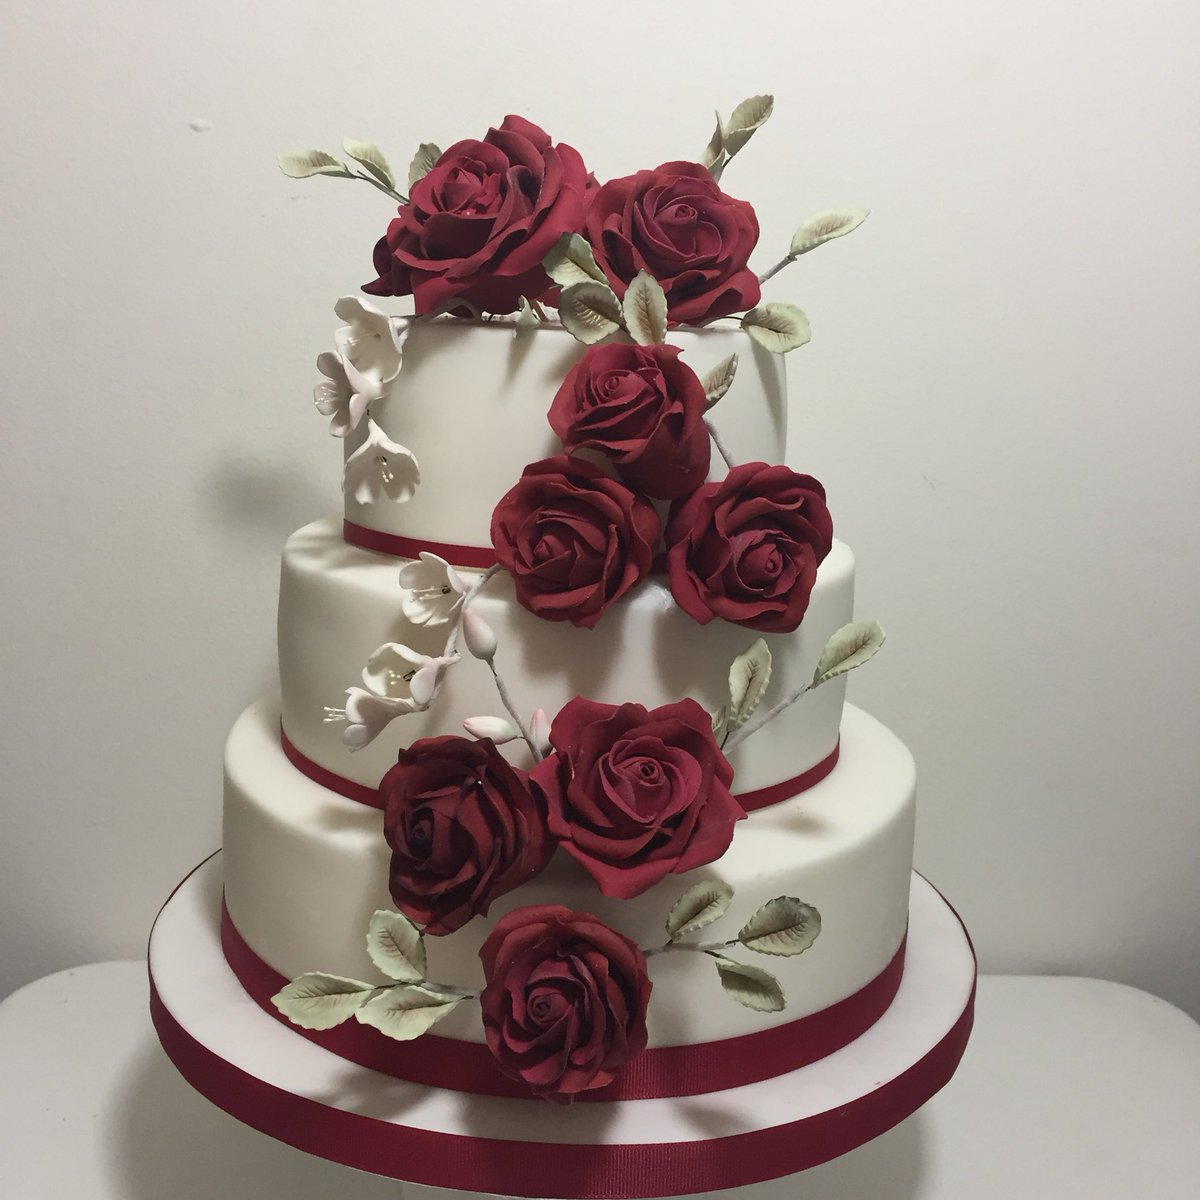 Cakes By La Chi Sur Twitter Red Roses On White Fondant 3tier